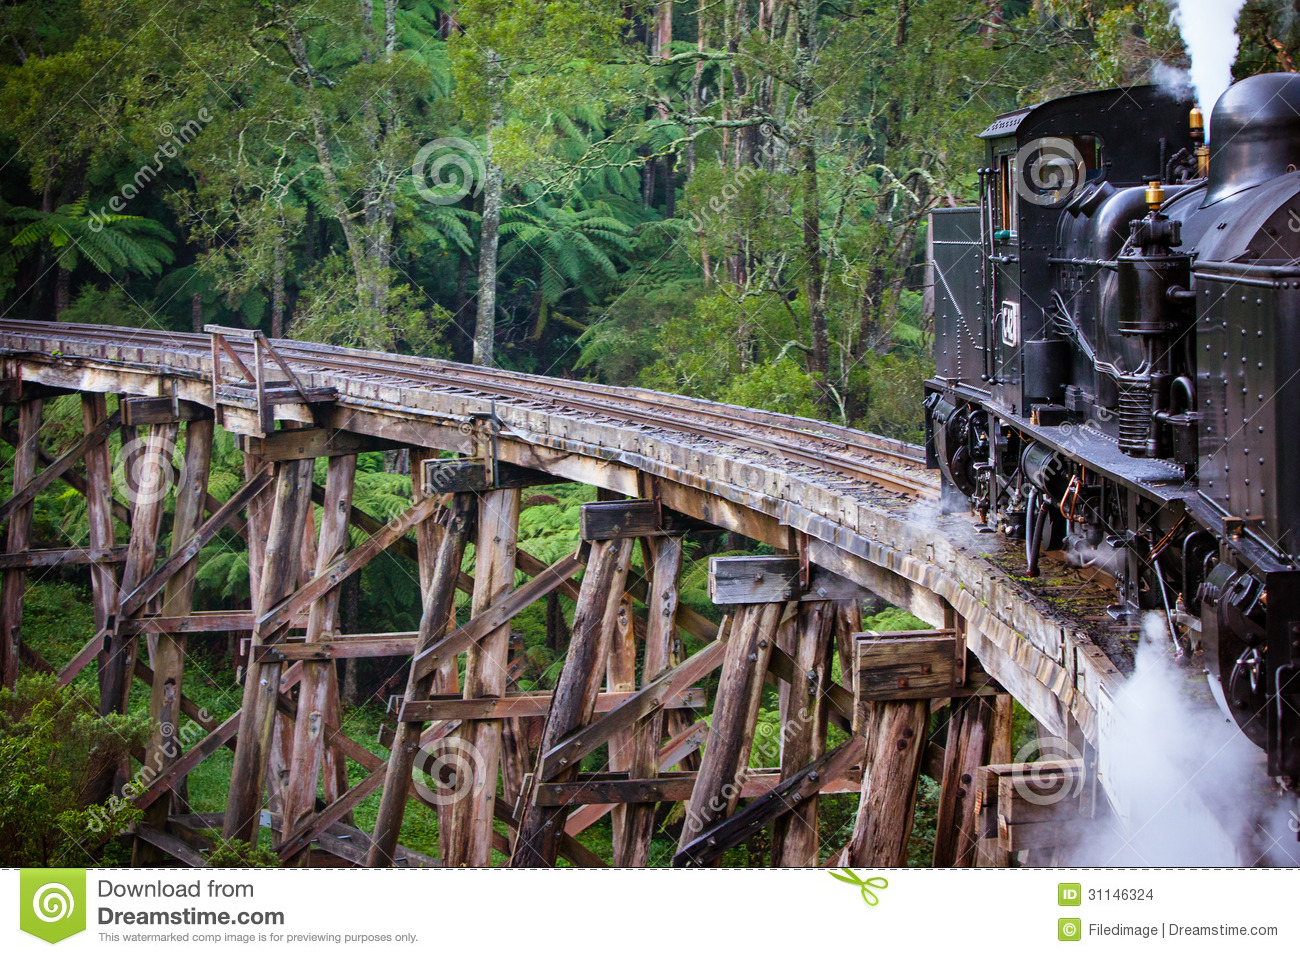 how to go puffing billy by train